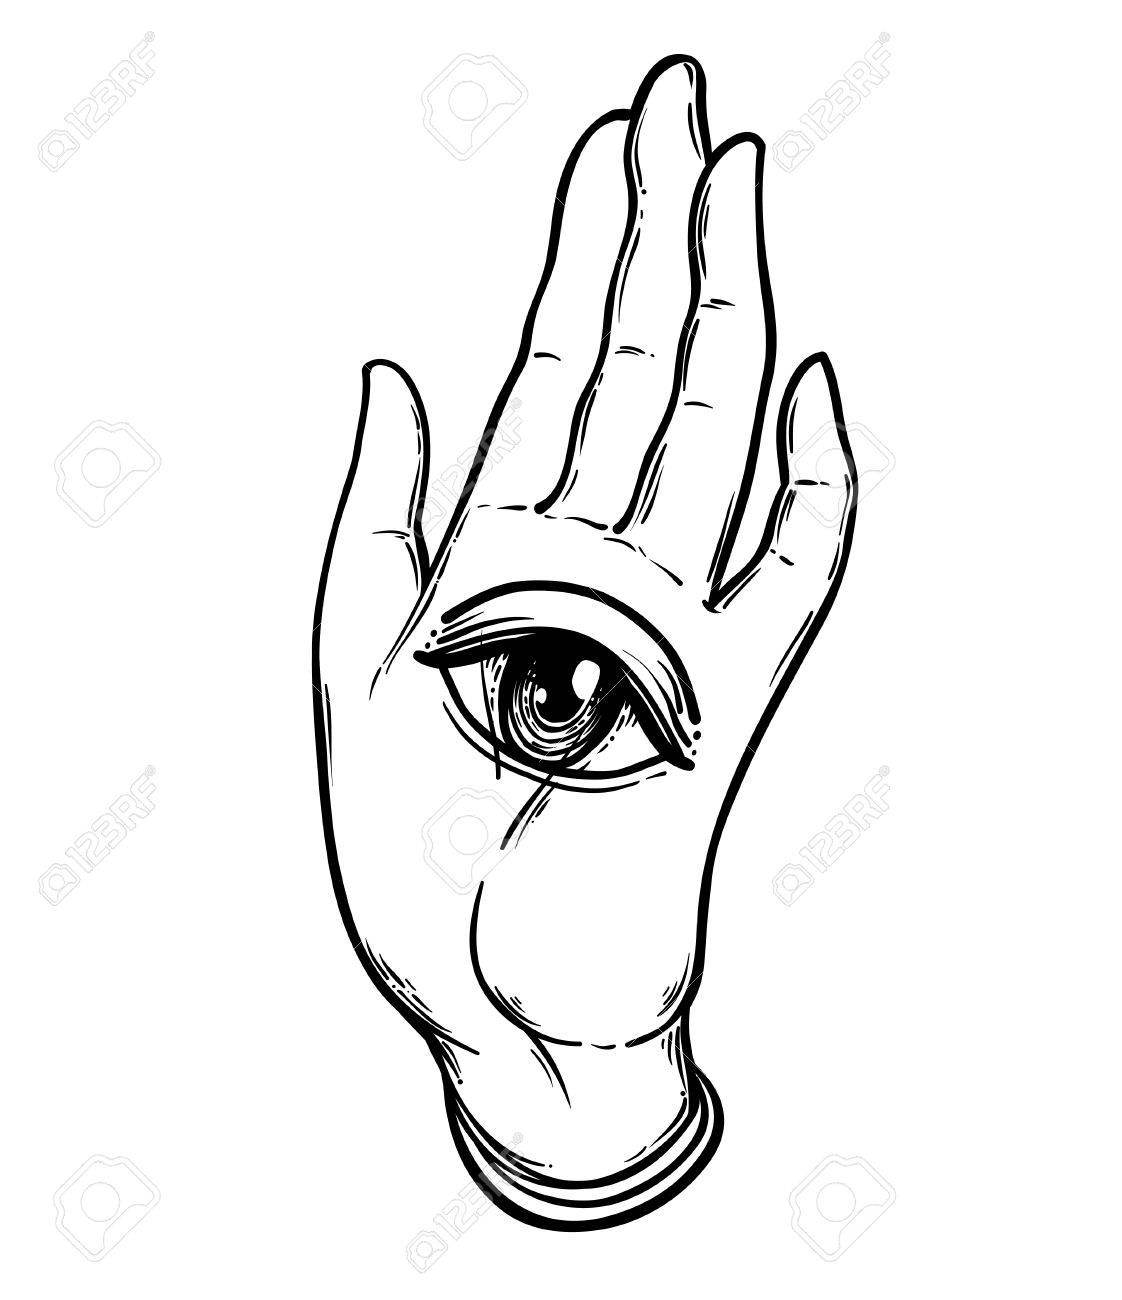 open hand with the all seeing eye on the palm occult design